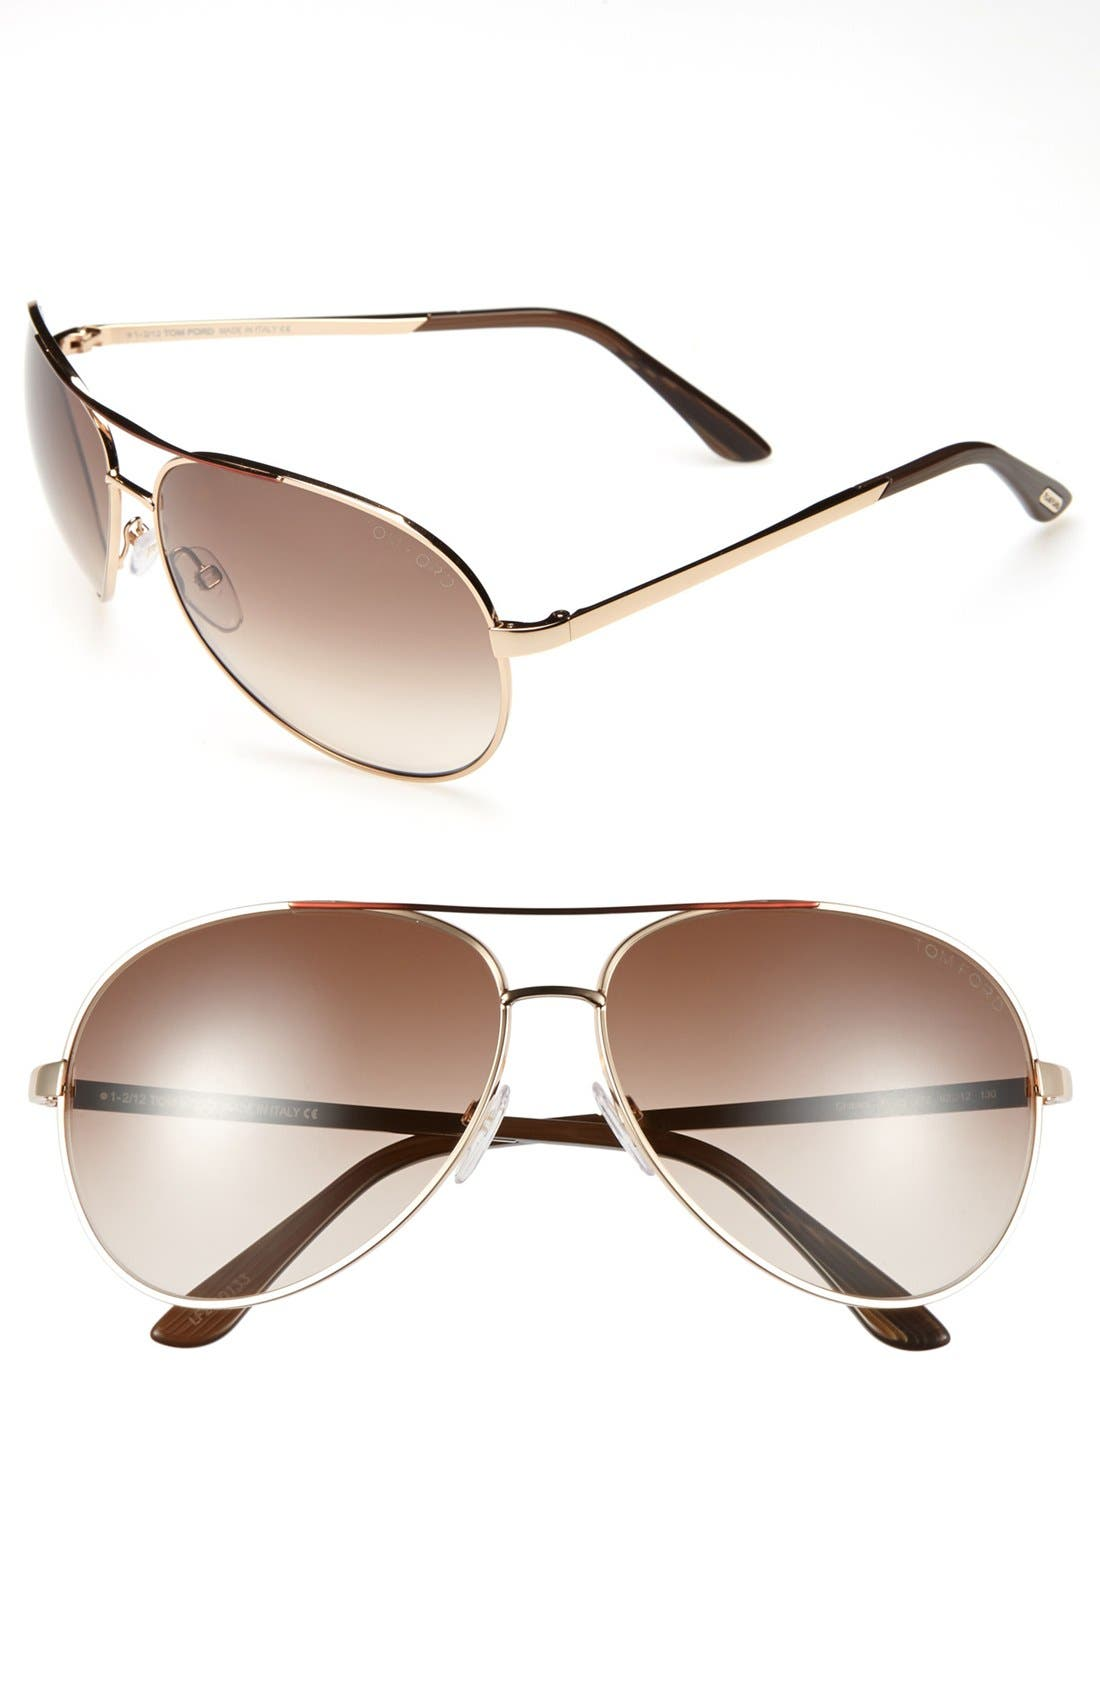 'Charles' 62mm Aviator Sunglasses,                         Main,                         color, Shiny Rose Gold/ Brown